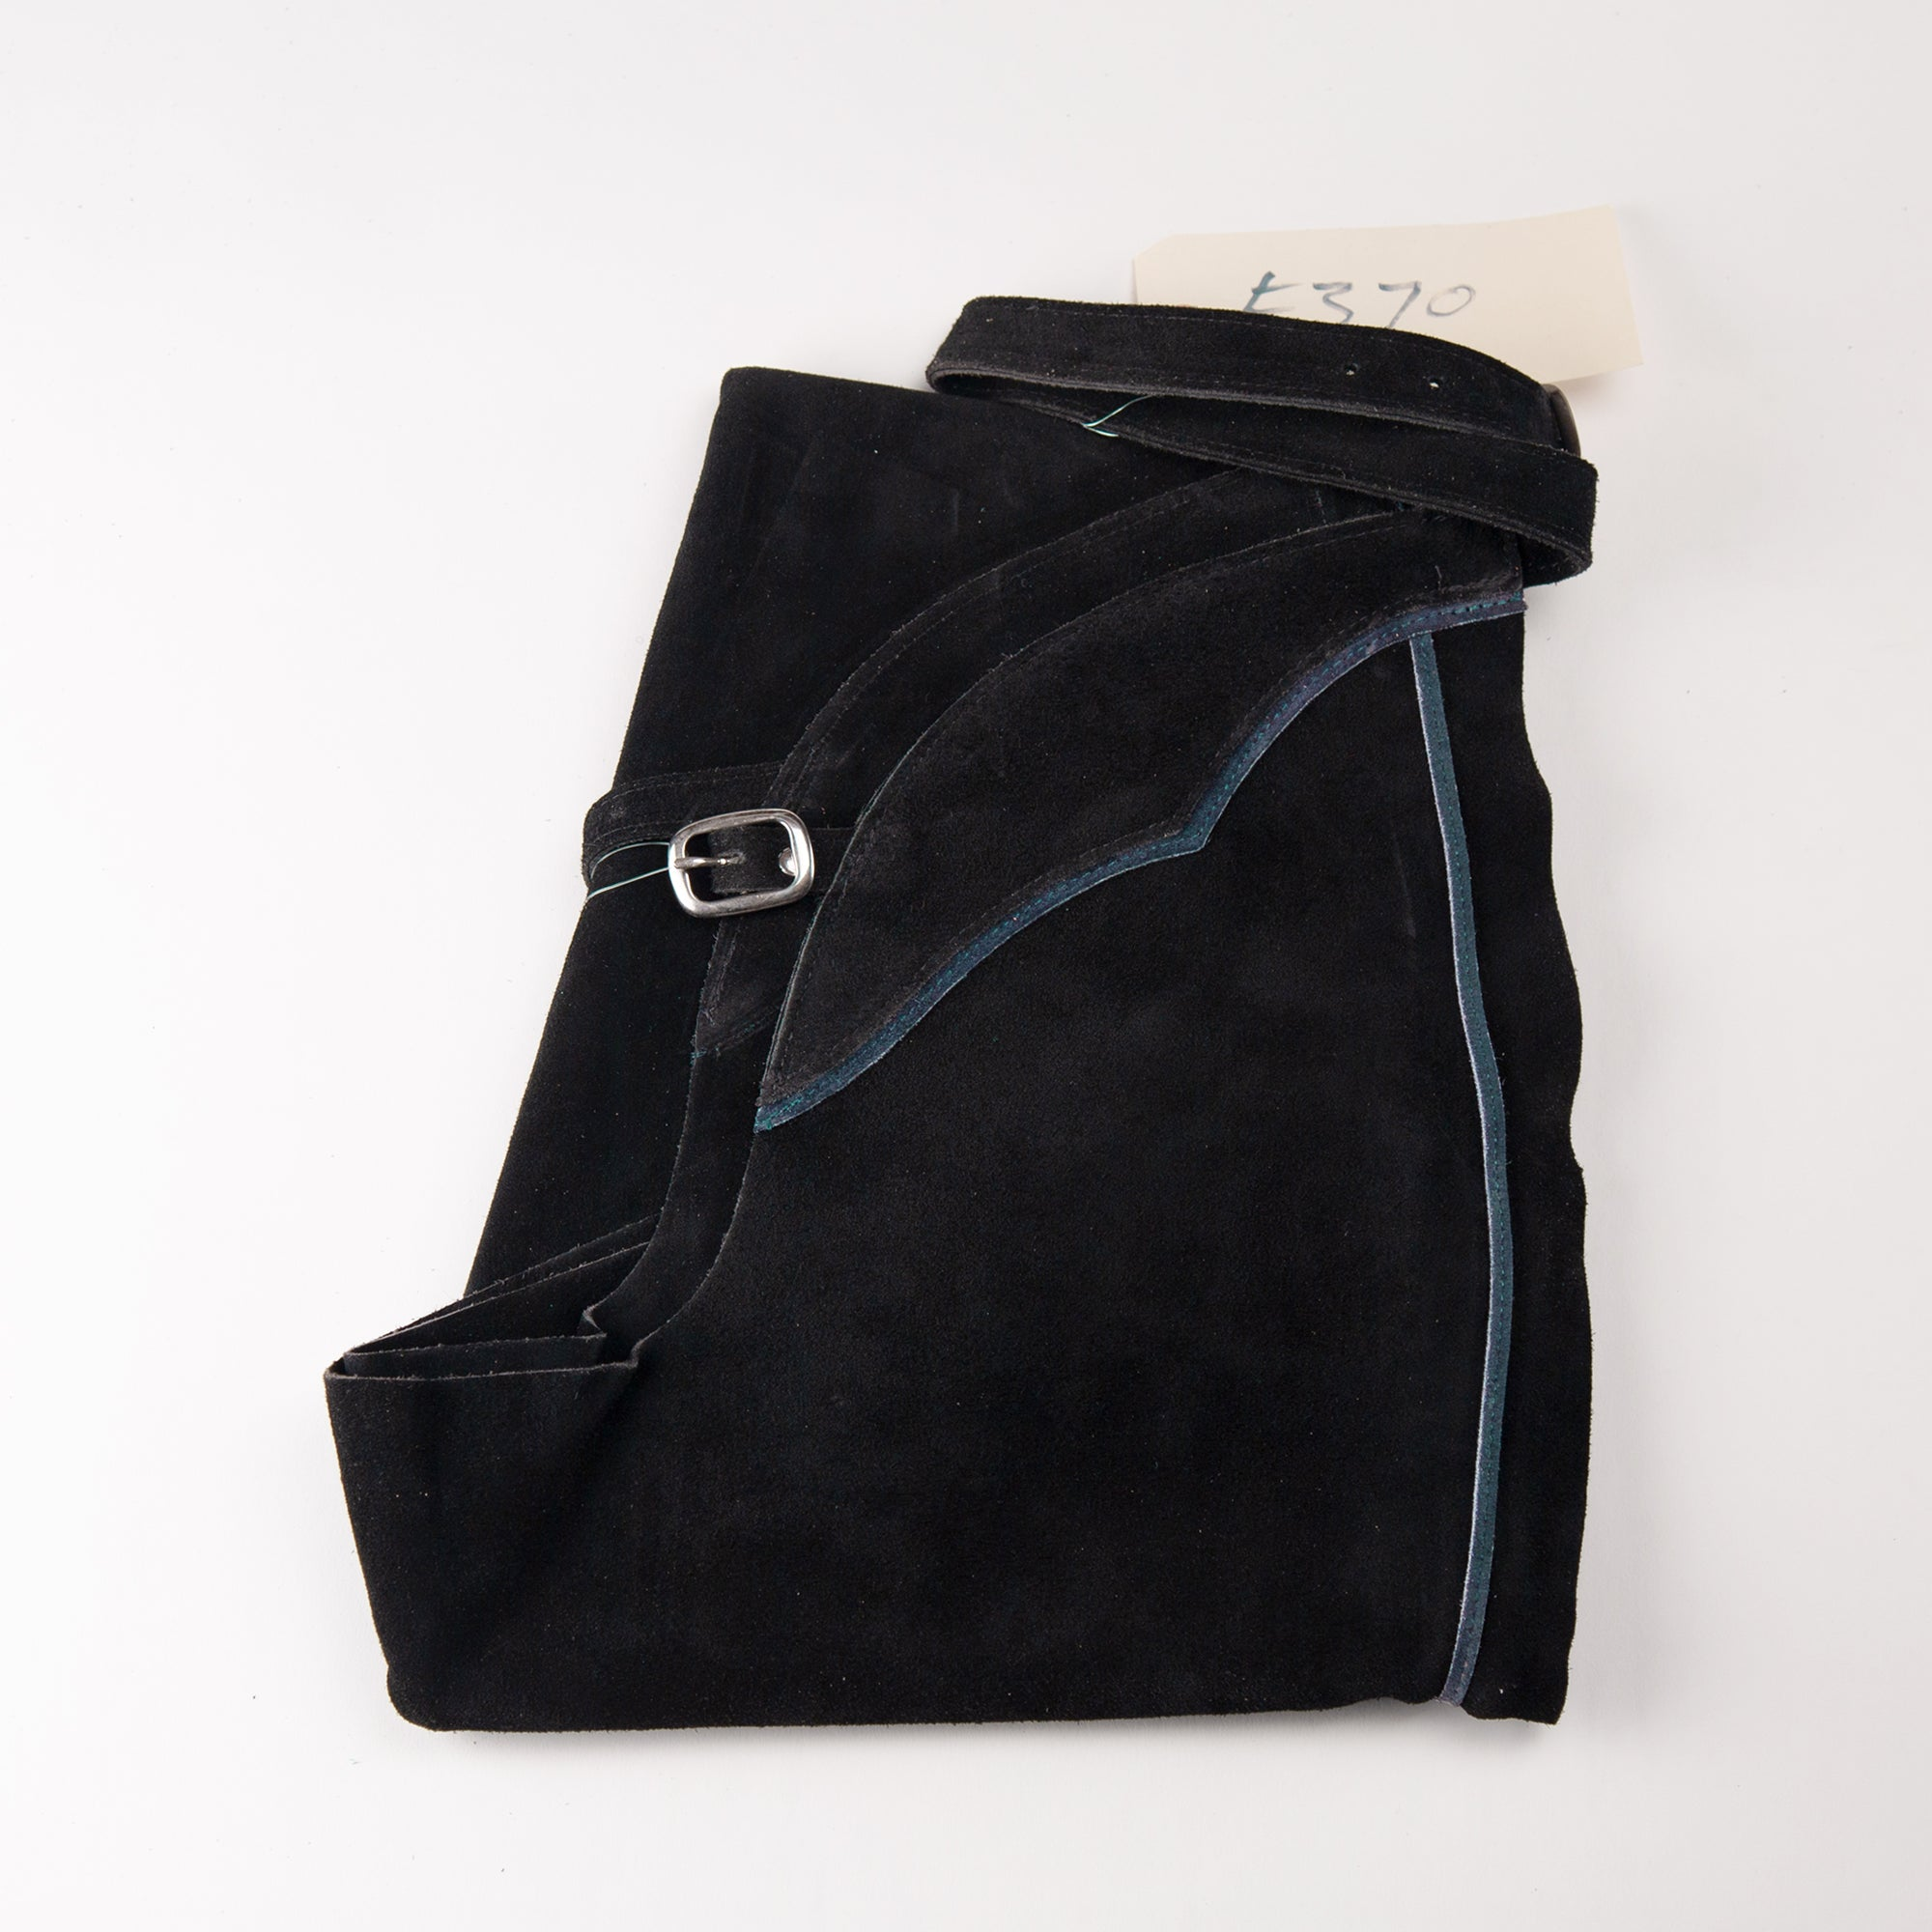 English Schooling Chaps - Black Suede - Navy Stripe